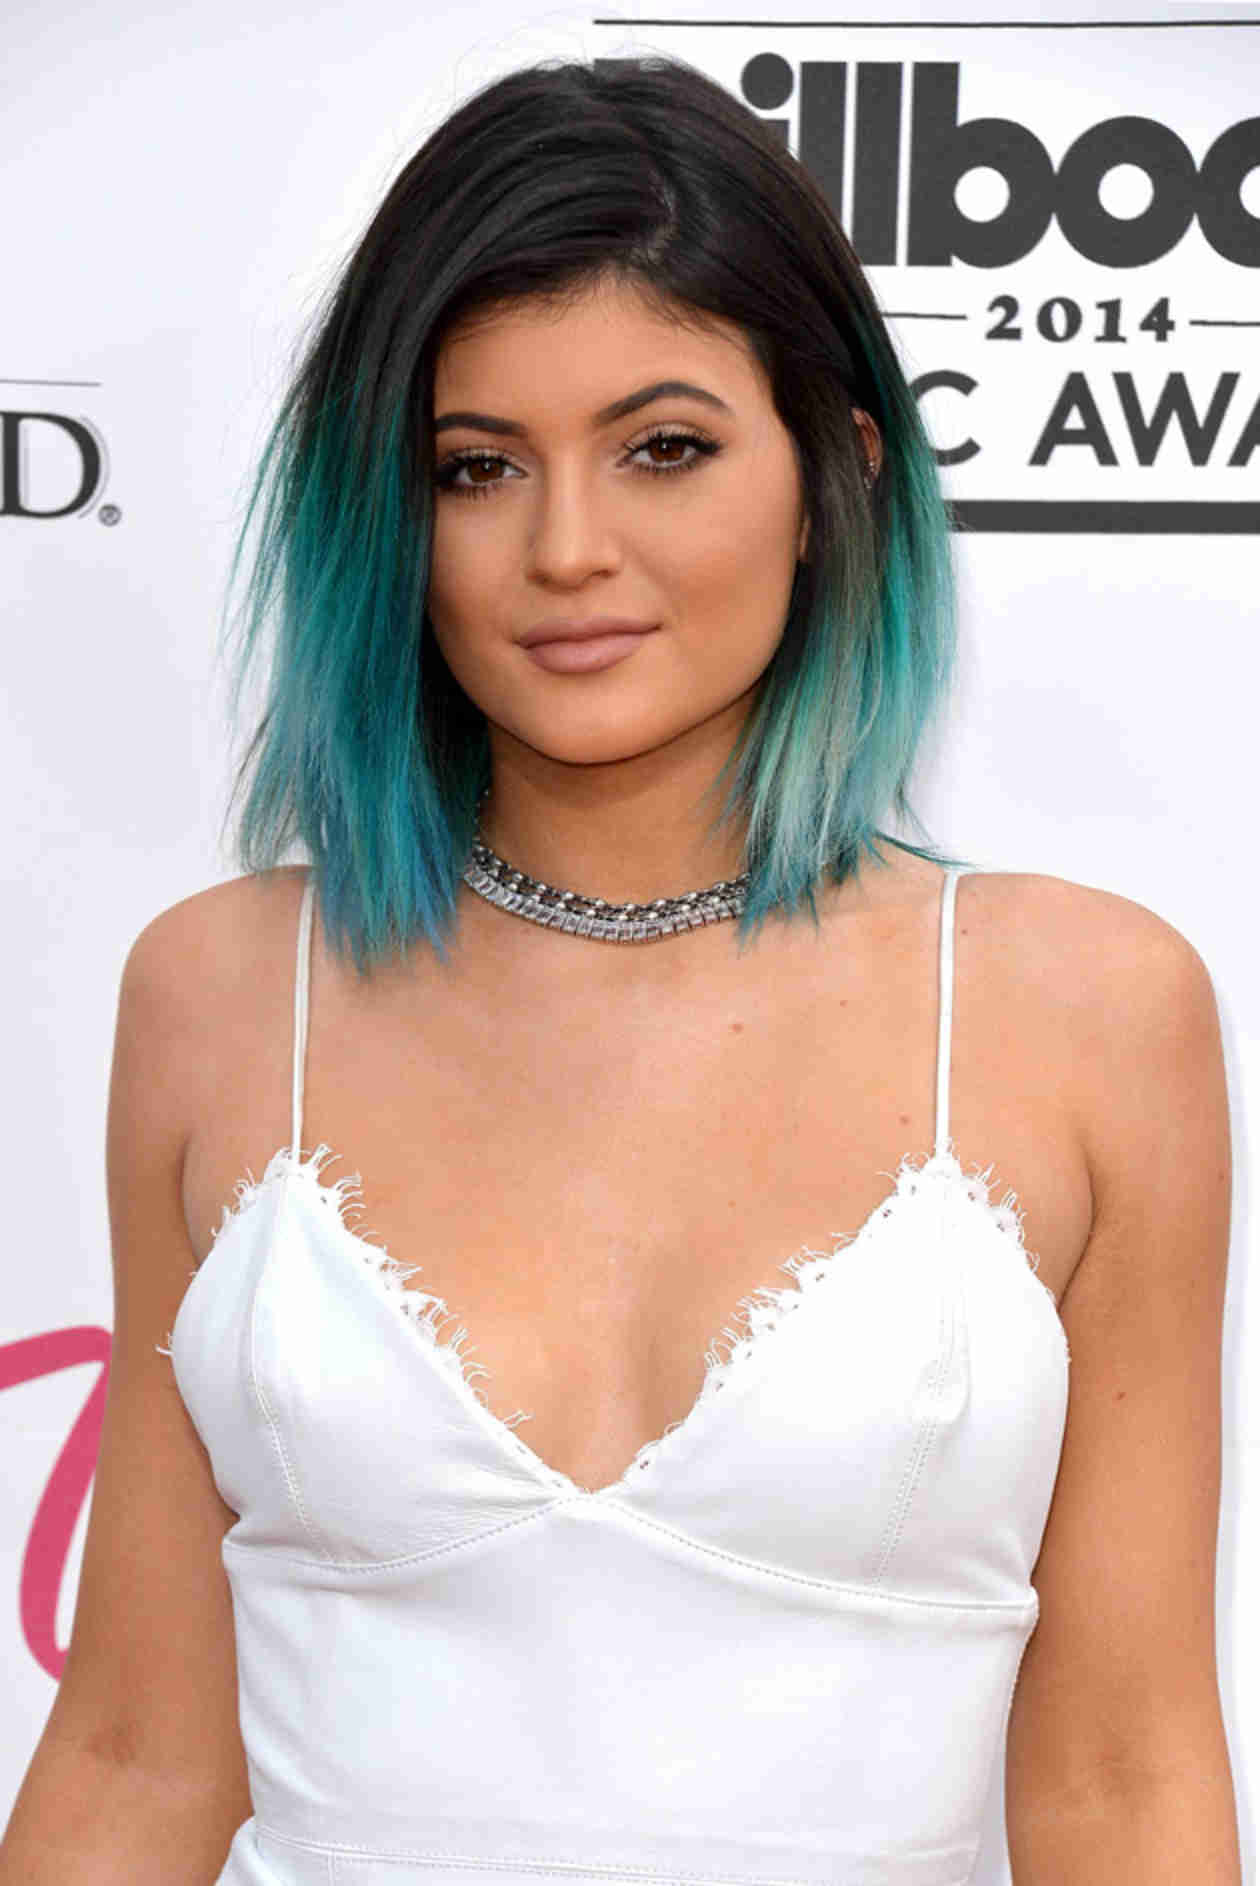 Kylie Jenner Sports Long Black Extensions For PacSun Shoot (VIDEO)